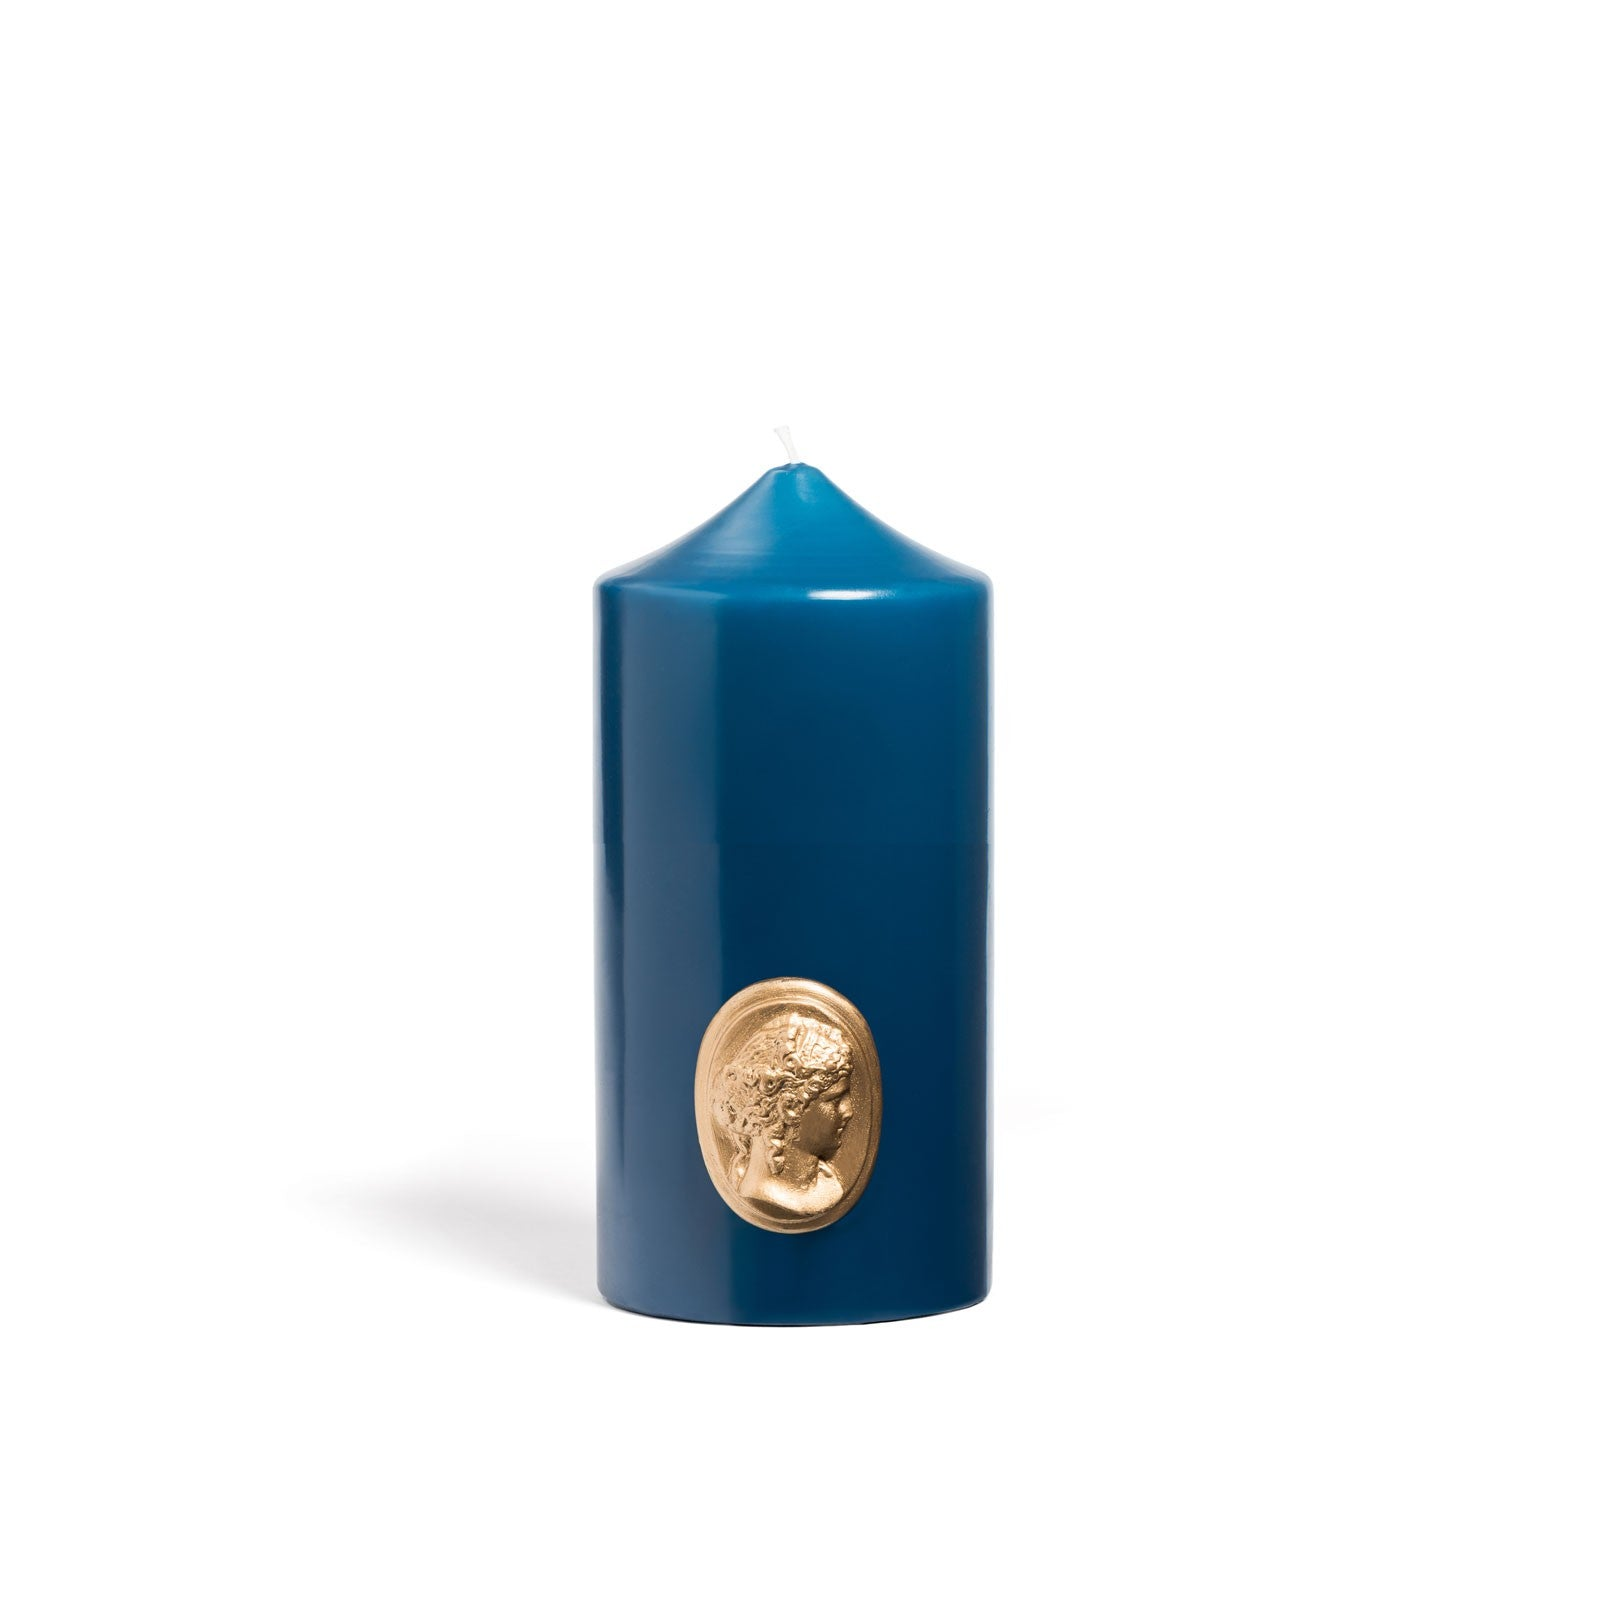 Cire Trudon Pillar Candle Cornflower Blue